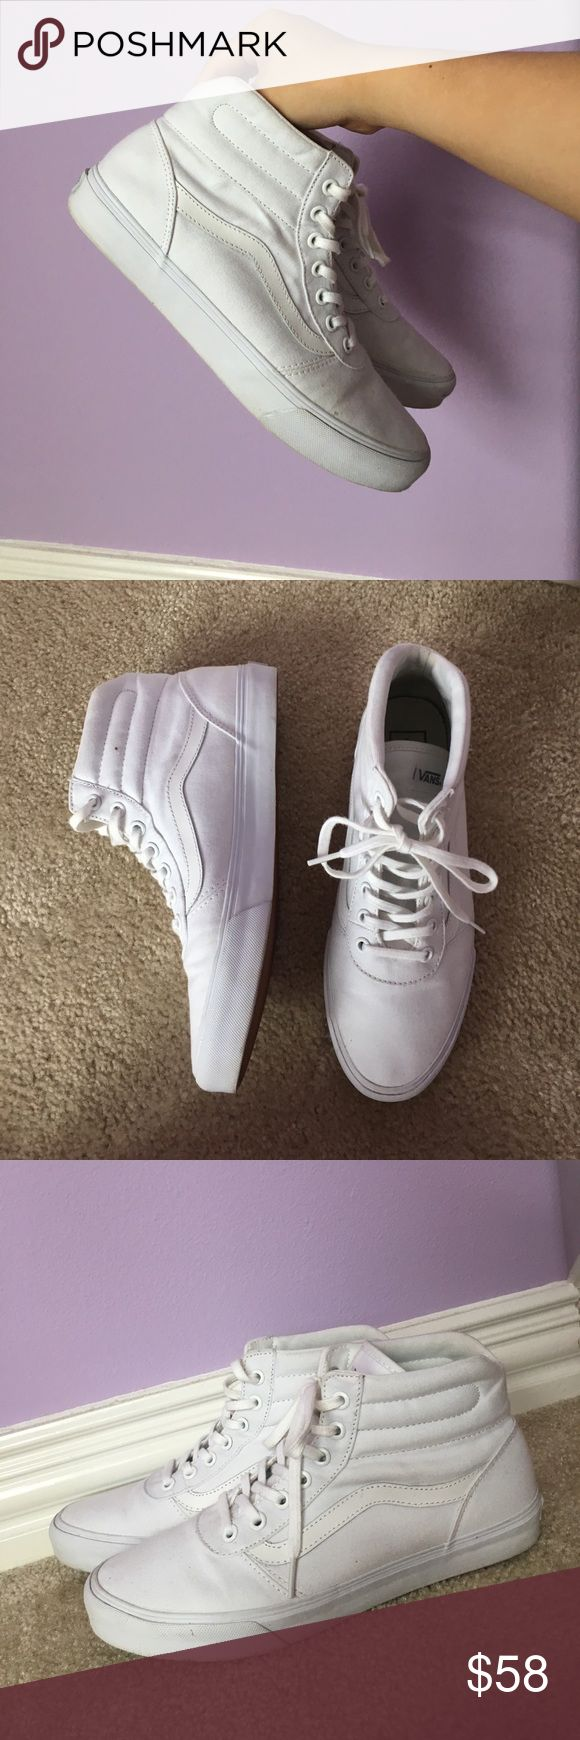 All white Vans size 8.5 too big, no scruffs or stains. Almost as good as new. Bought from previous seller on M.Ercari but once again, too big on me. Previous seller only wore once/twice and I wore it once to try on. No odor. Need gone asap Vans Shoes Sneakers